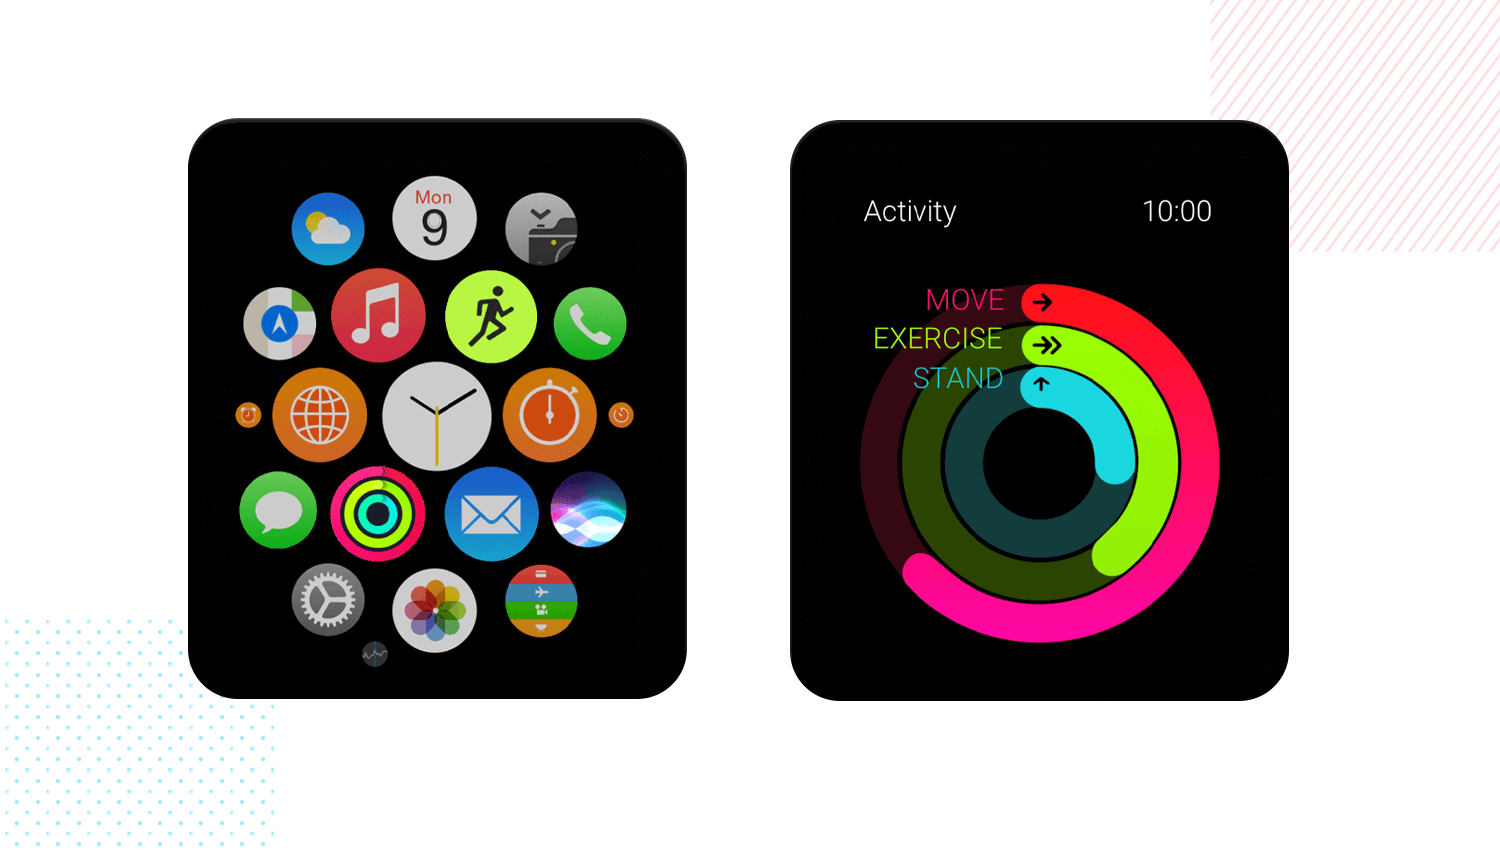 Apple Watch mobile app mockup